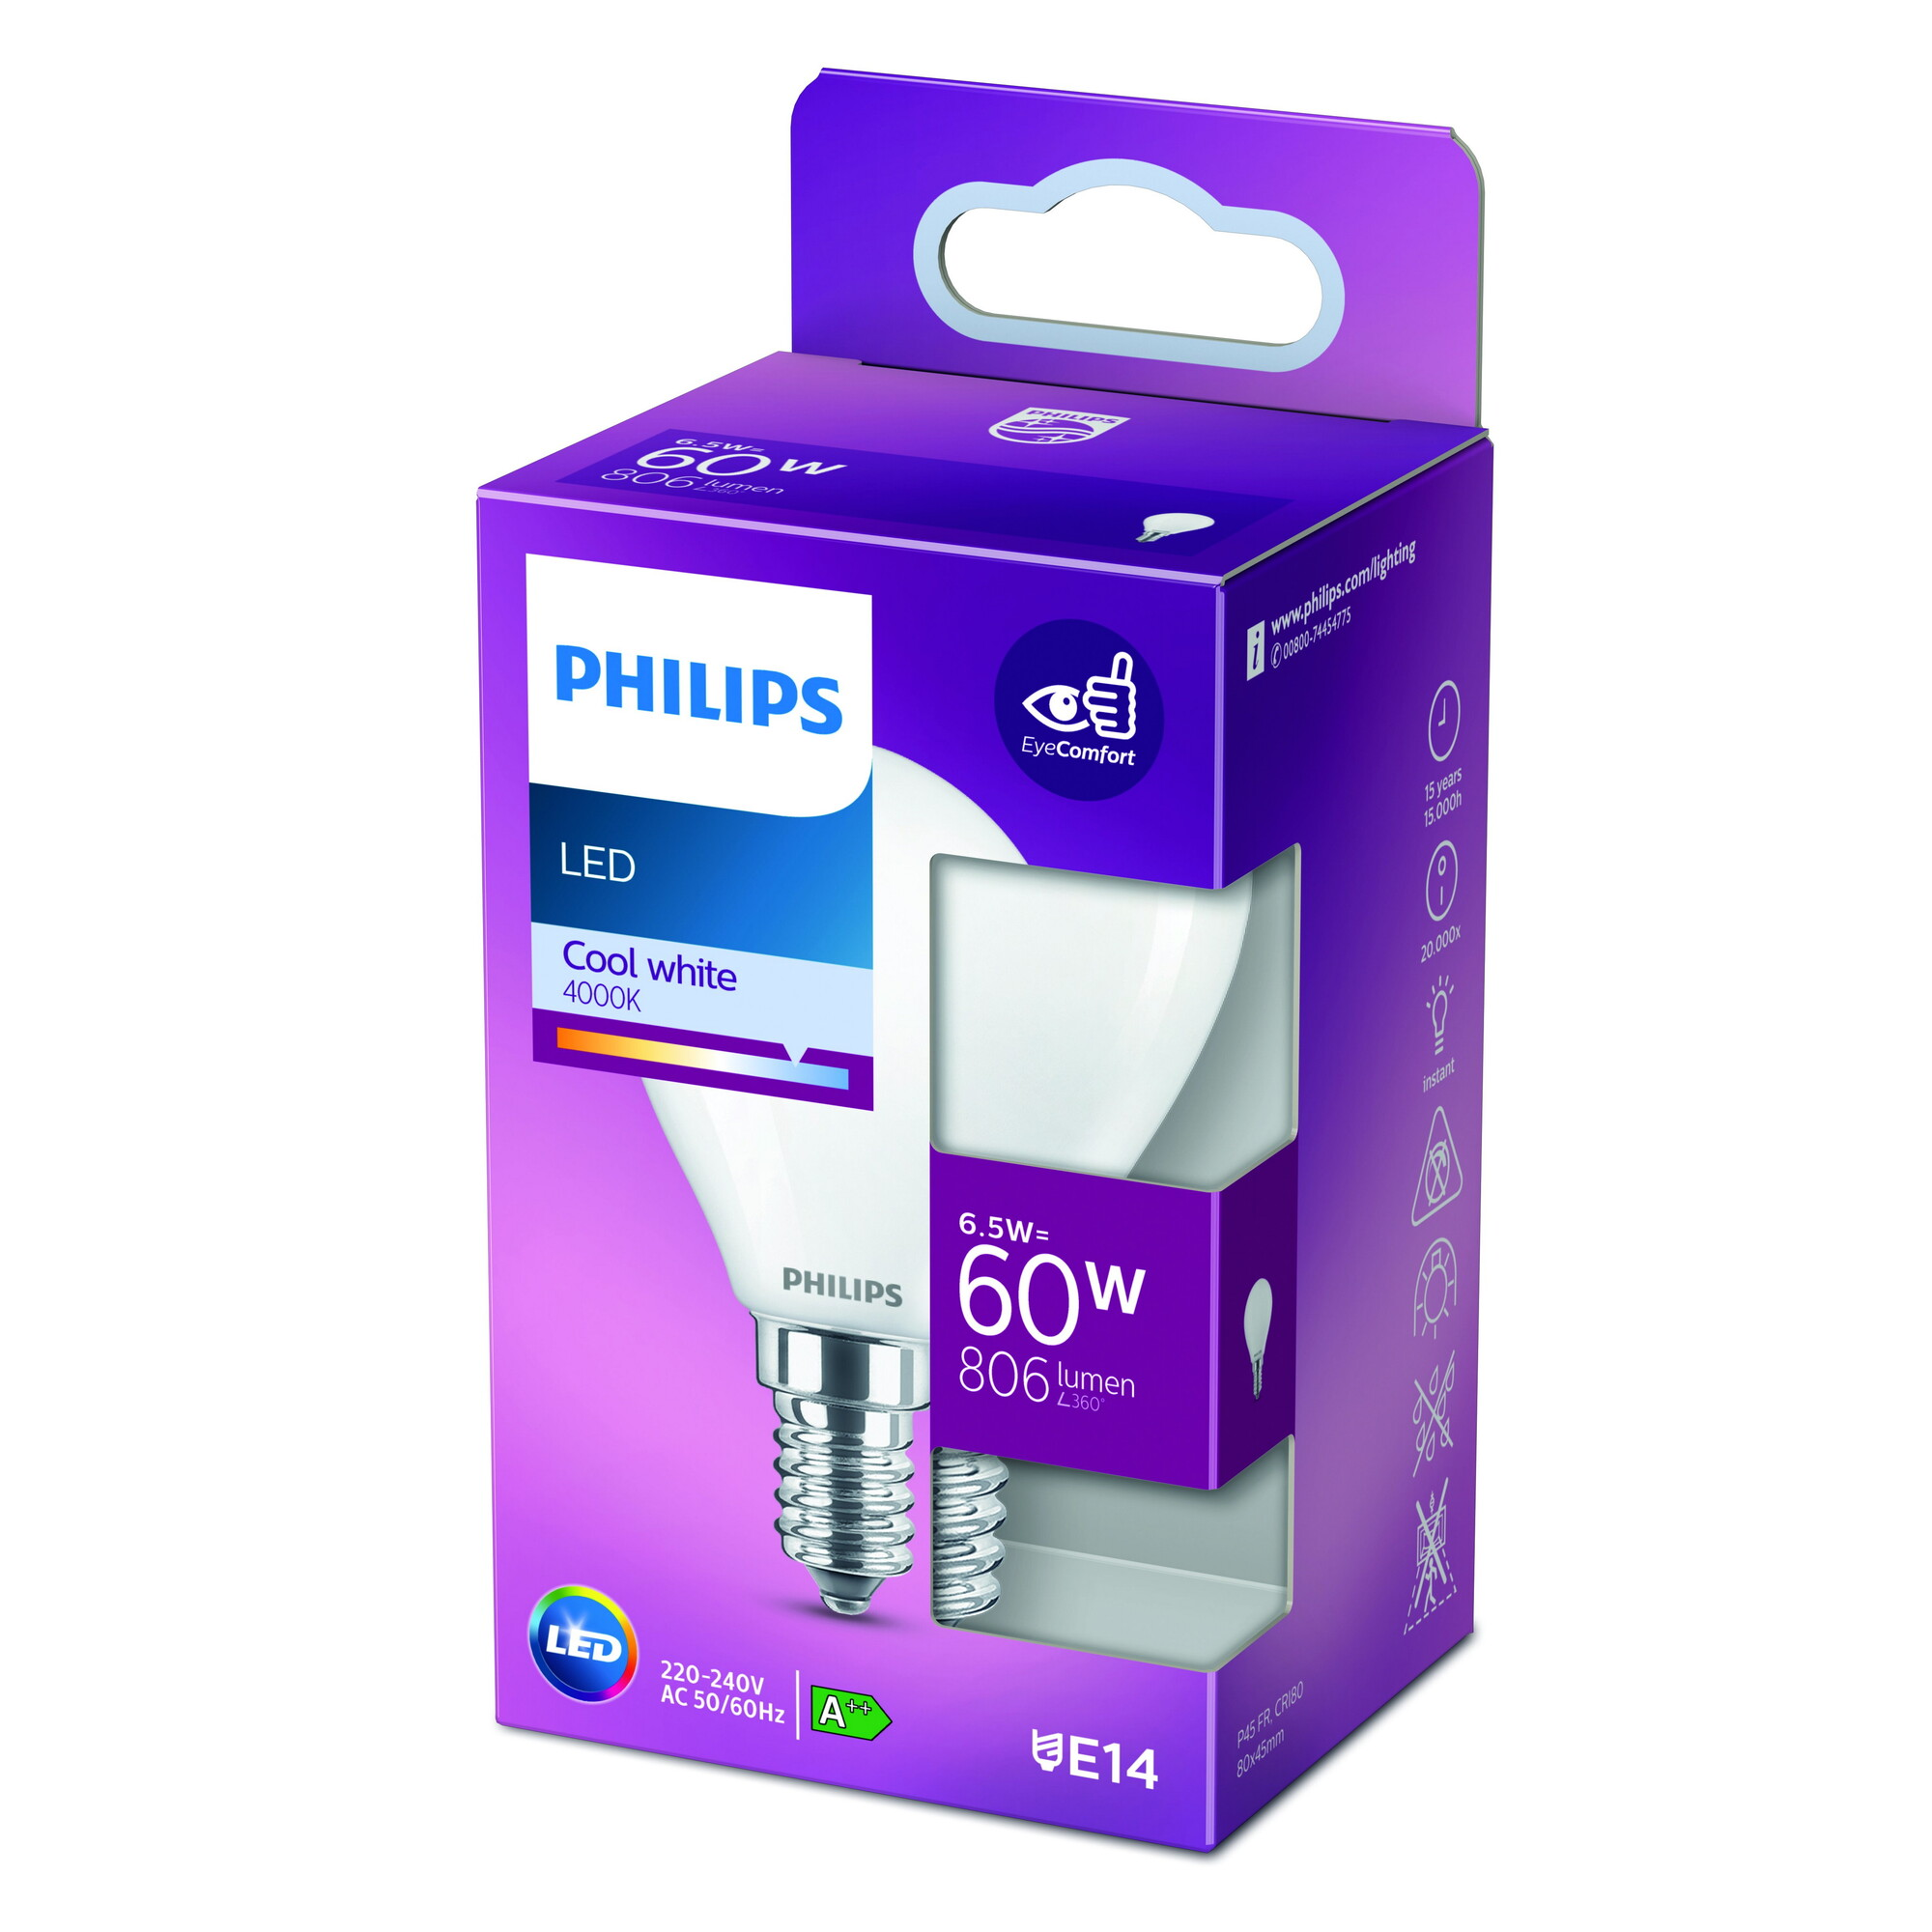 Philips LED classic E14 6,5W 806lm 4000K Kogel Frosted